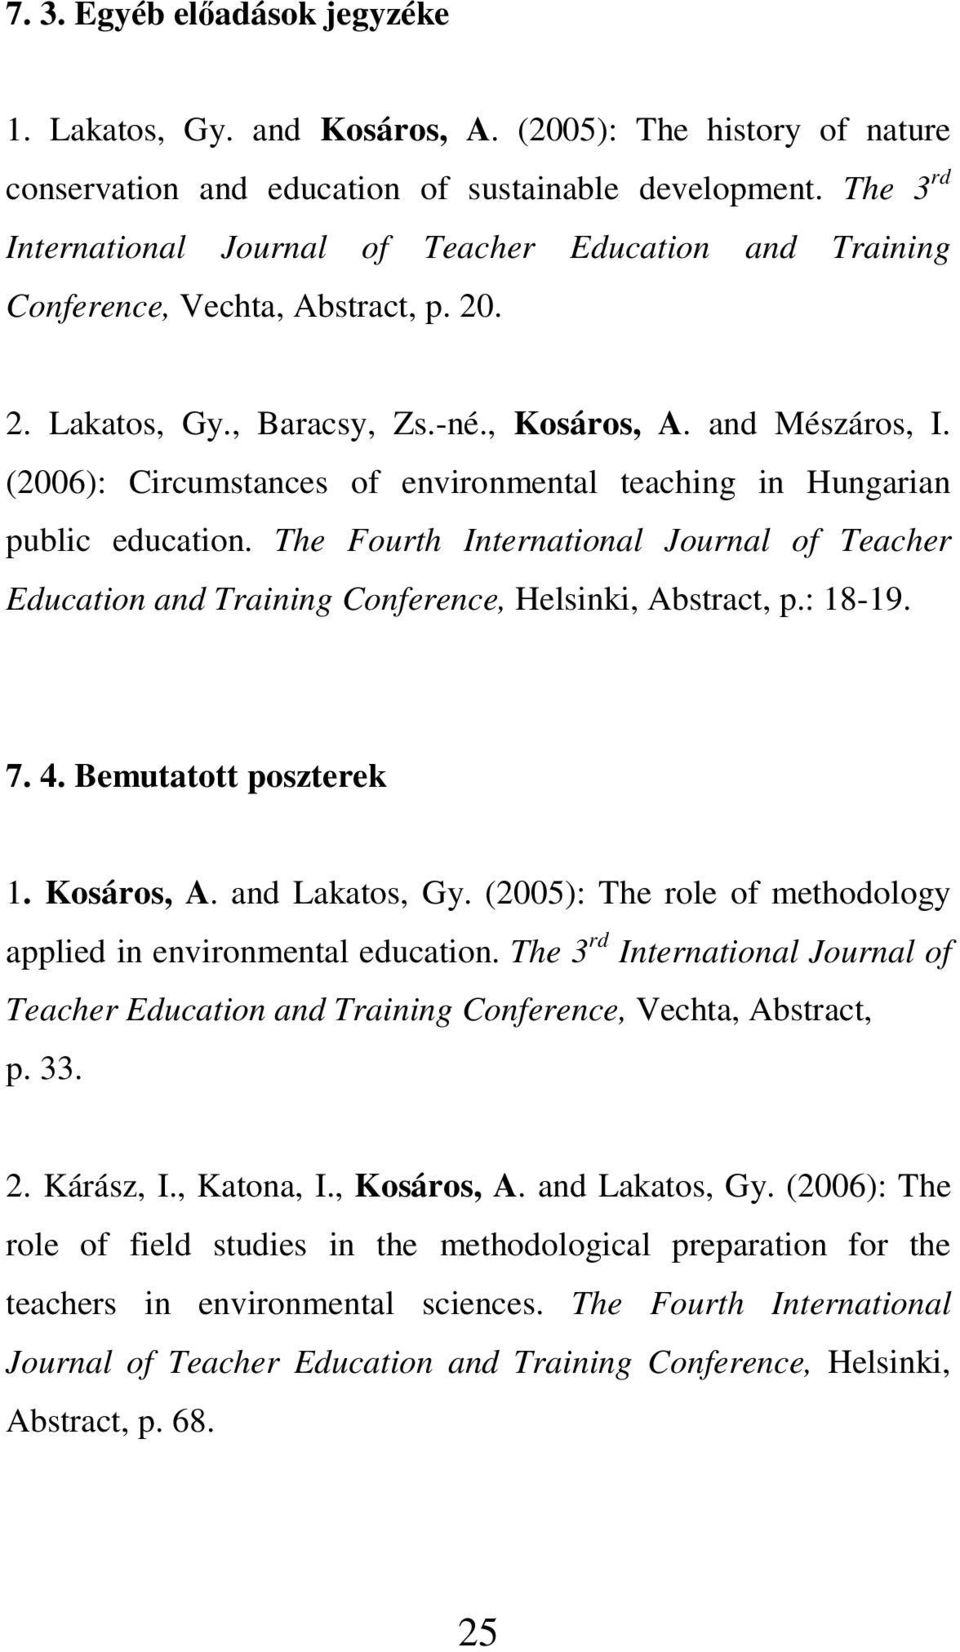 (2006): Circumstances of environmental teaching in Hungarian public education. The Fourth International Journal of Teacher Education and Training Conference, Helsinki, Abstract, p.: 18-19. 7. 4.